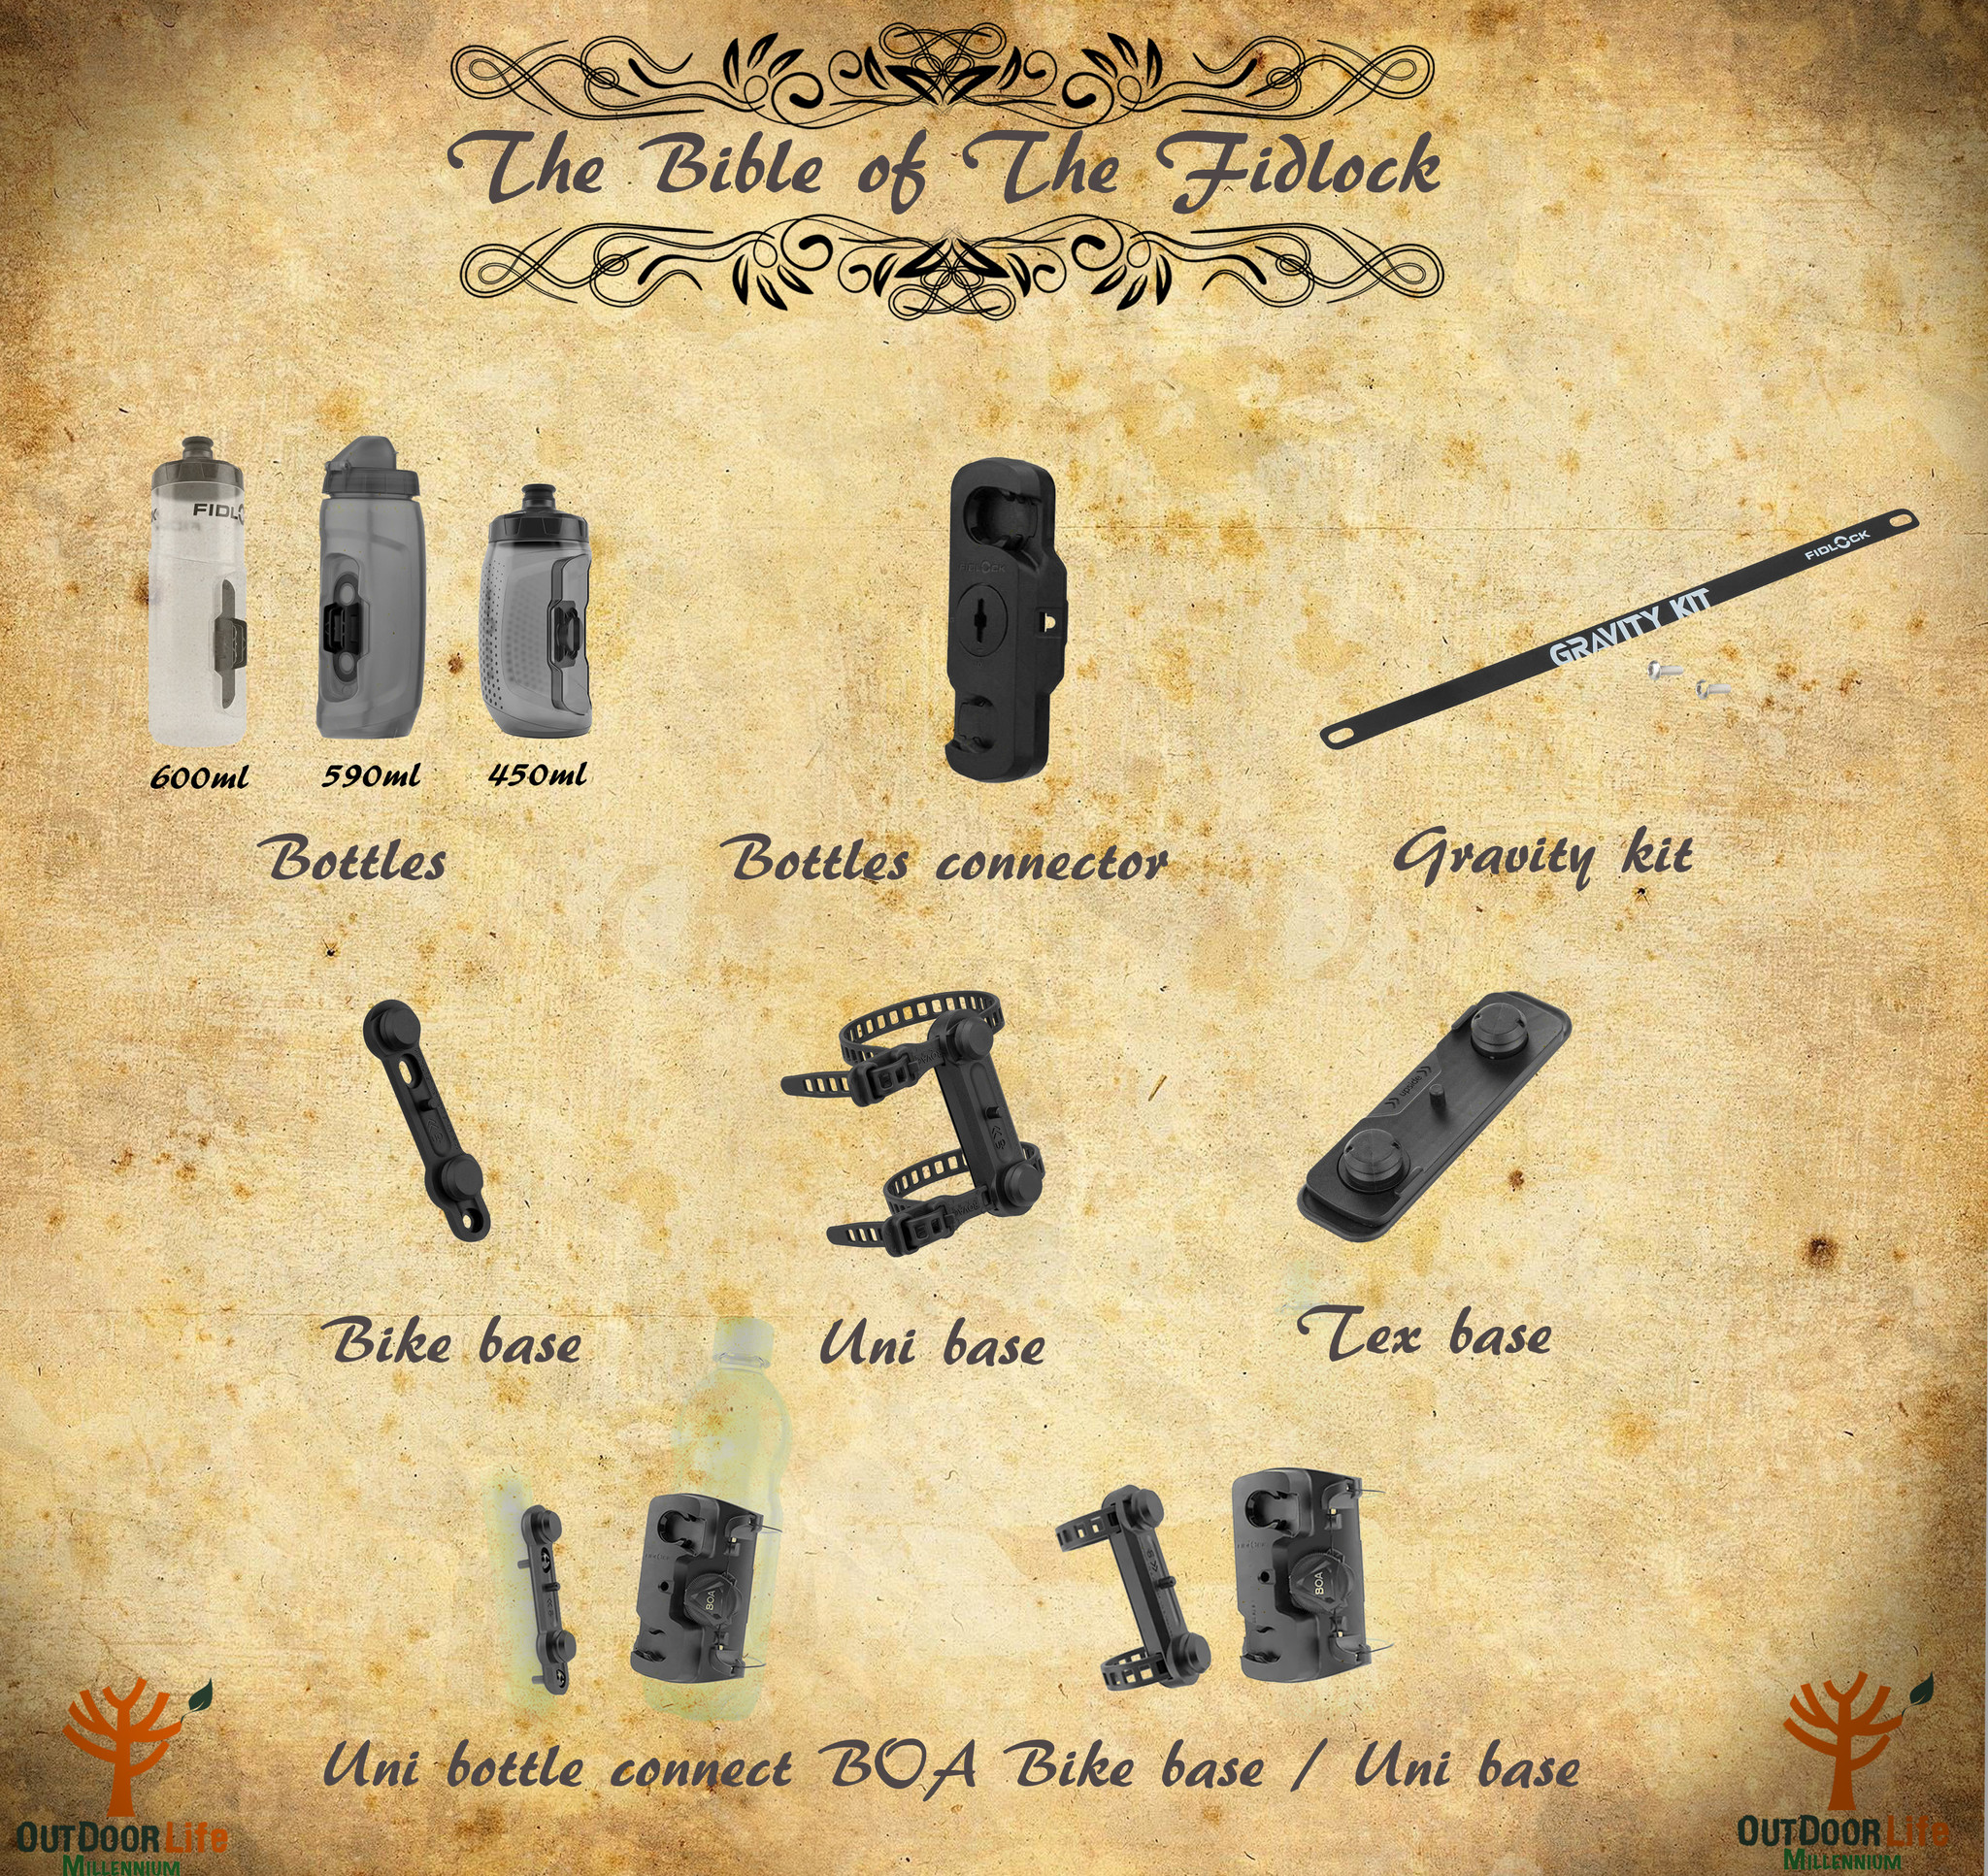 Everything you need to know about Fidlock bottles before Purchase